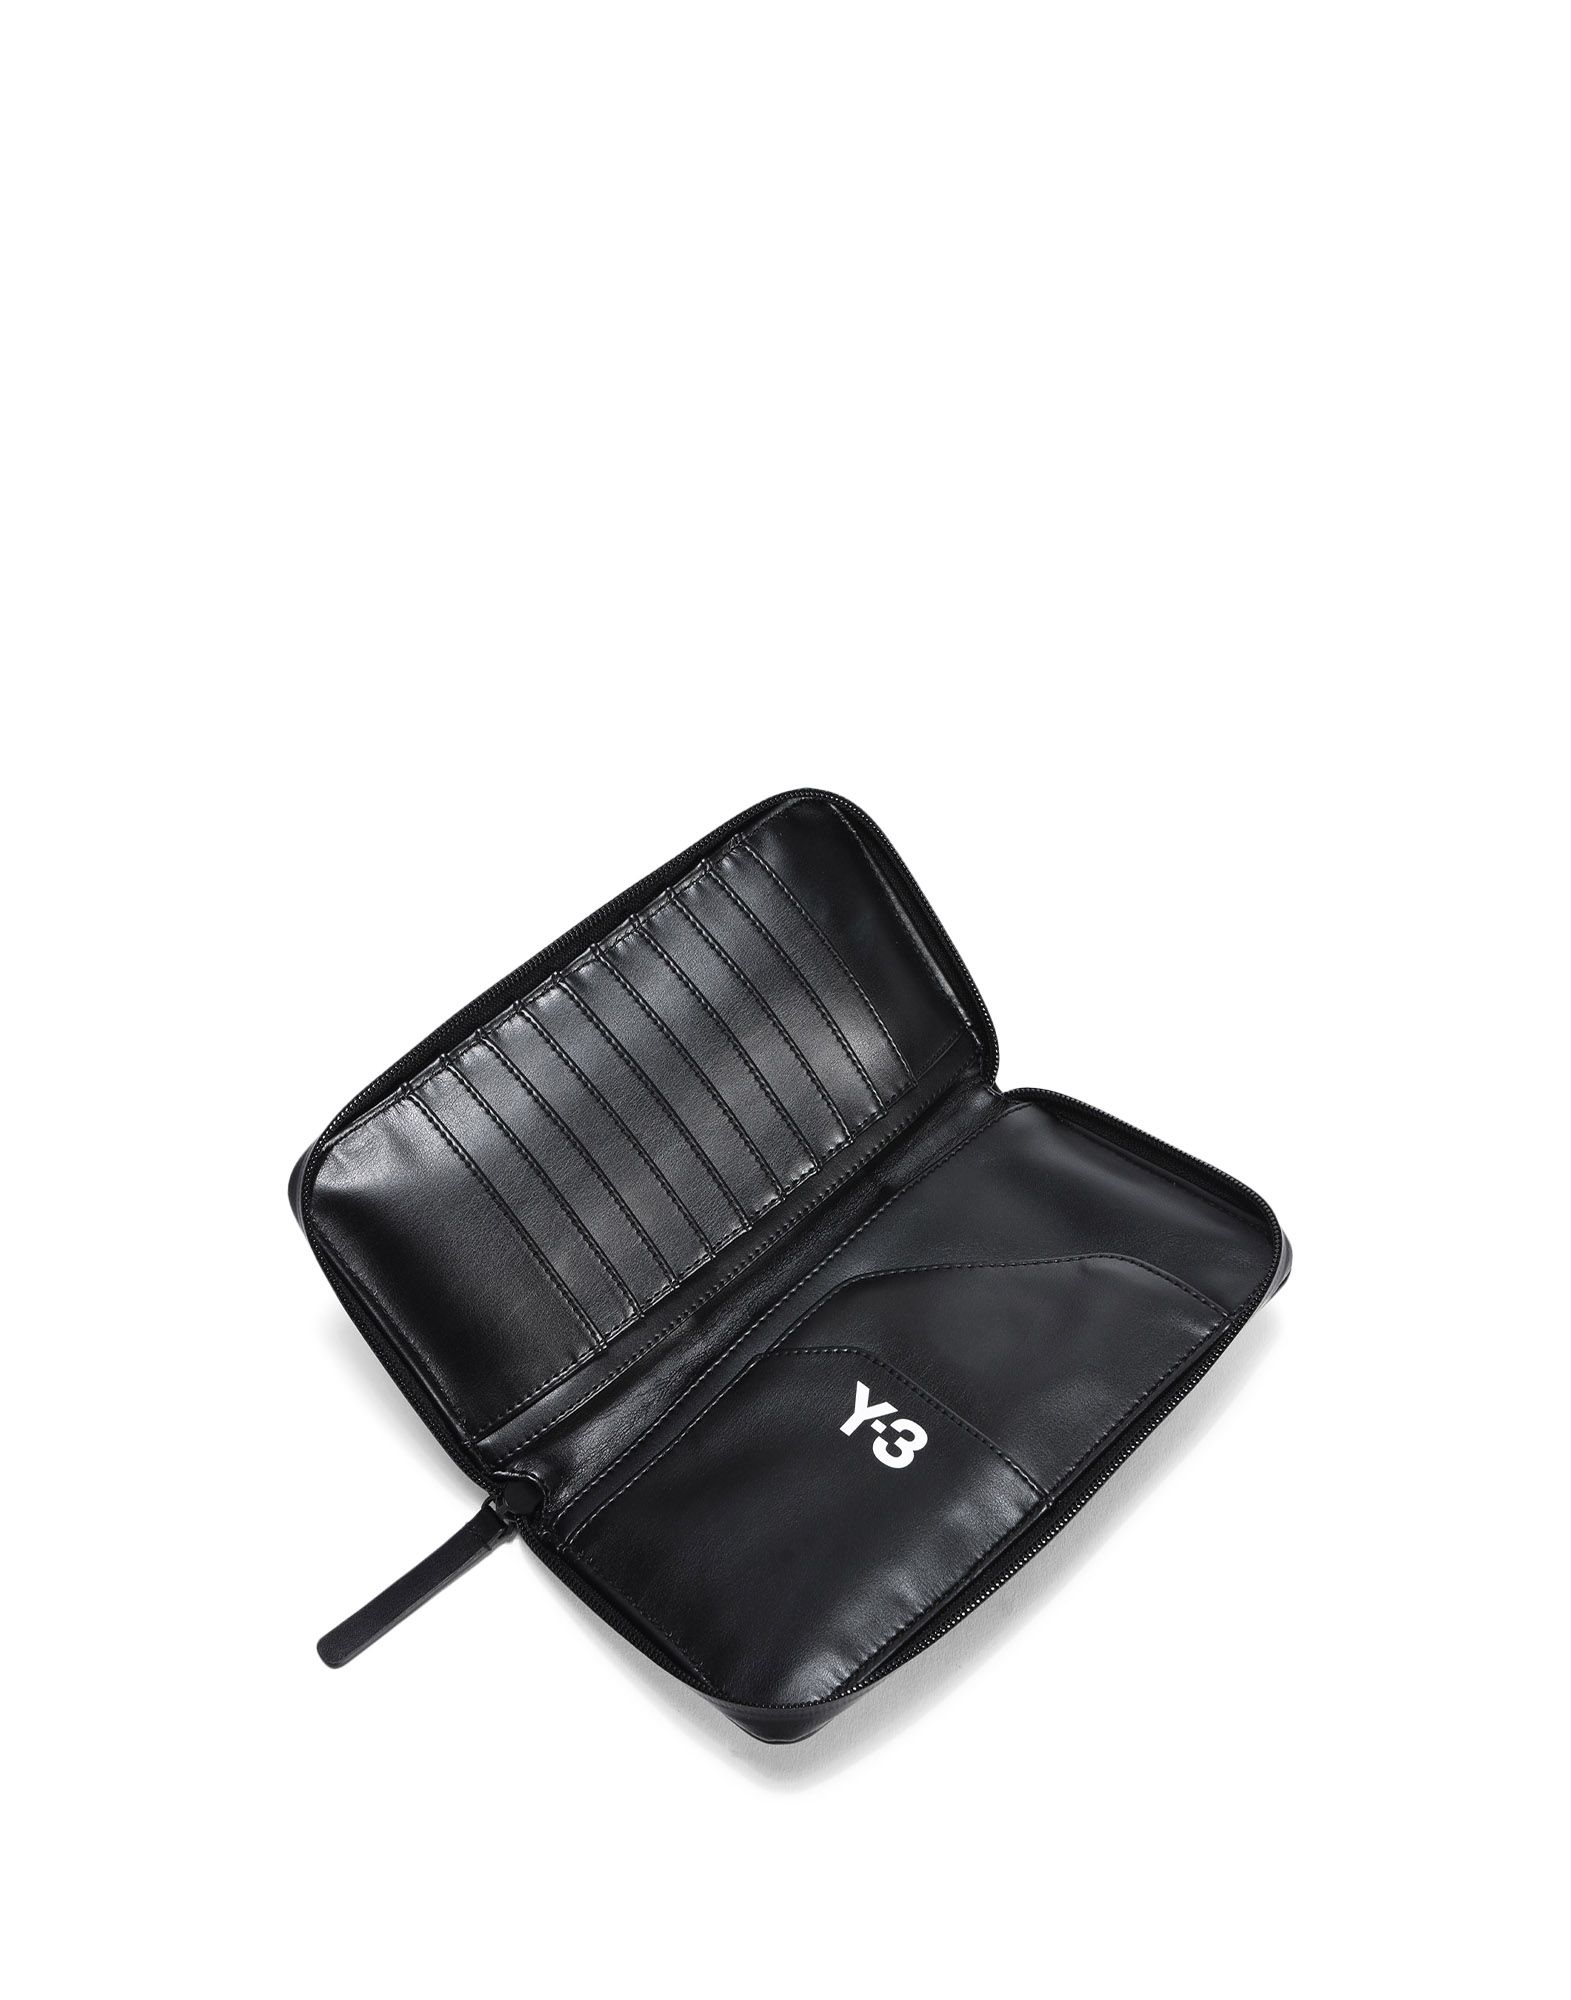 Y-3 Y-3 Travel Wallet Wallet E r